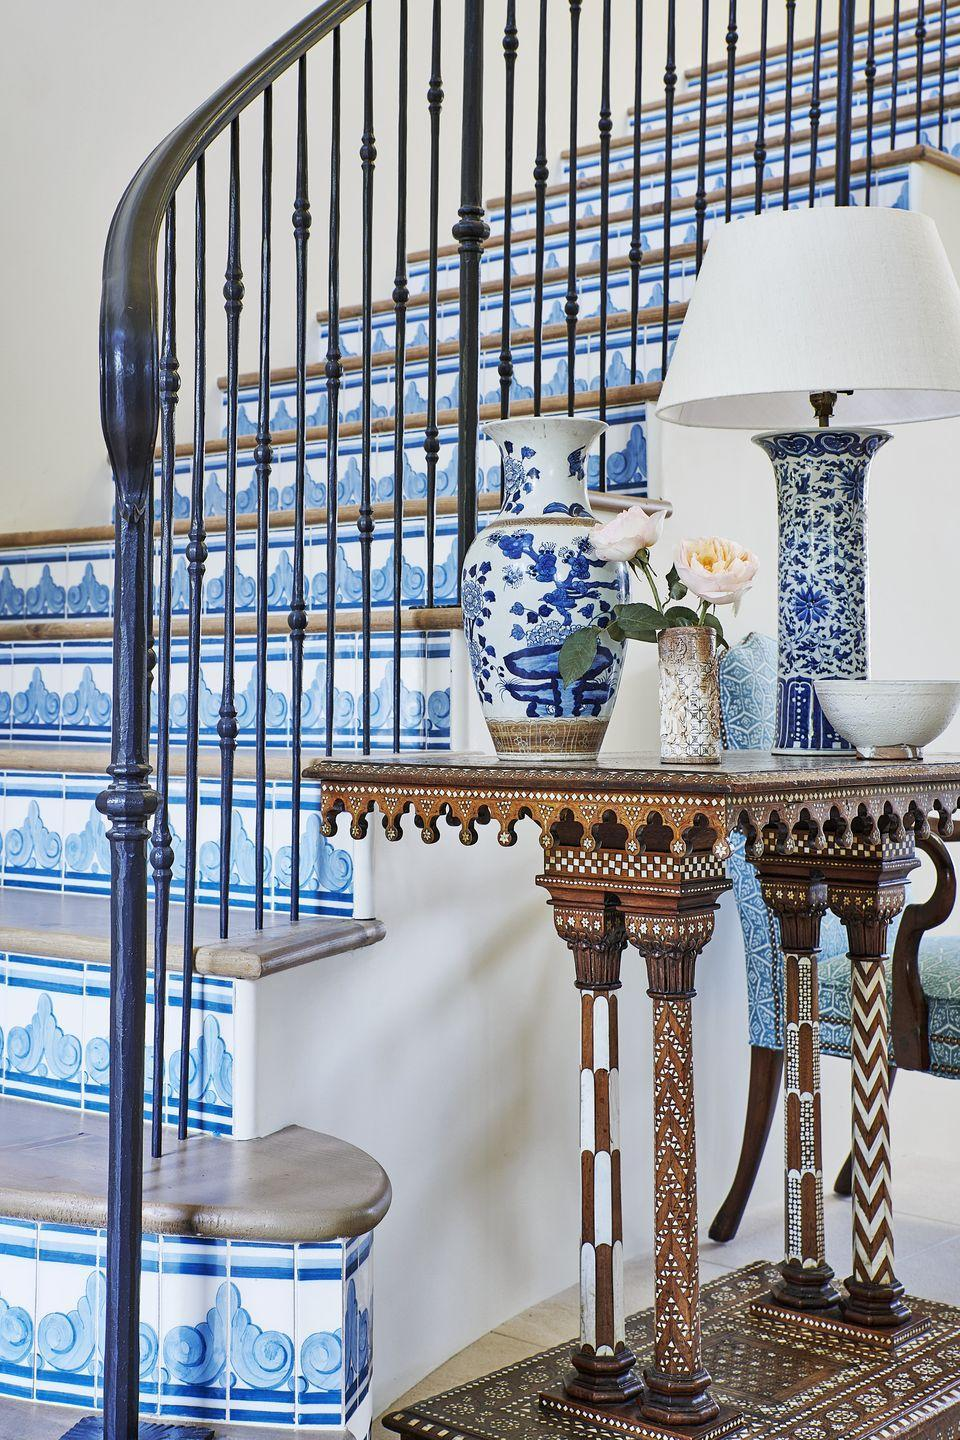 """<p>It's no secret designer Mark D. Sikes loves to pair blue and white in his projects, and that's just the case in <a href=""""https://www.veranda.com/decorating-ideas/house-tours/a34244492/mark-sikes-california-house-tour-2020/"""" rel=""""nofollow noopener"""" target=""""_blank"""" data-ylk=""""slk:fashion designer Karen Kane's home in Pacific Palisades"""" class=""""link rapid-noclick-resp"""">fashion designer Karen Kane's home in Pacific Palisades</a>. Here, Sikes utilizes hand-painted ceramic tiles from NC Ceramic, offering a beautiful alternative to actually painting the stairs themselves while still creating visual interest and introducing more pattern.</p>"""